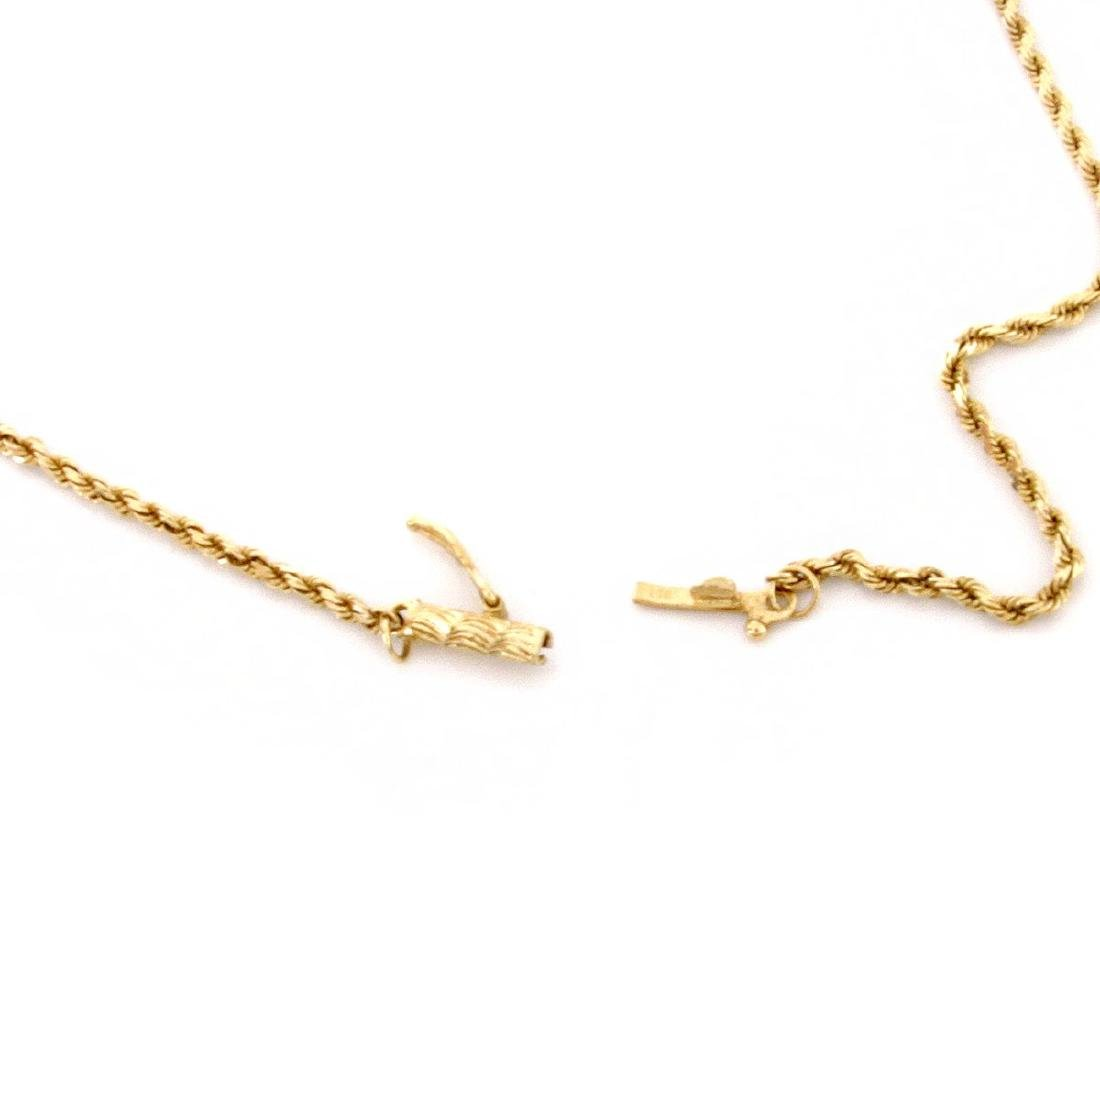 Diamond and 14K Gold Cat Pendant Necklace - 4